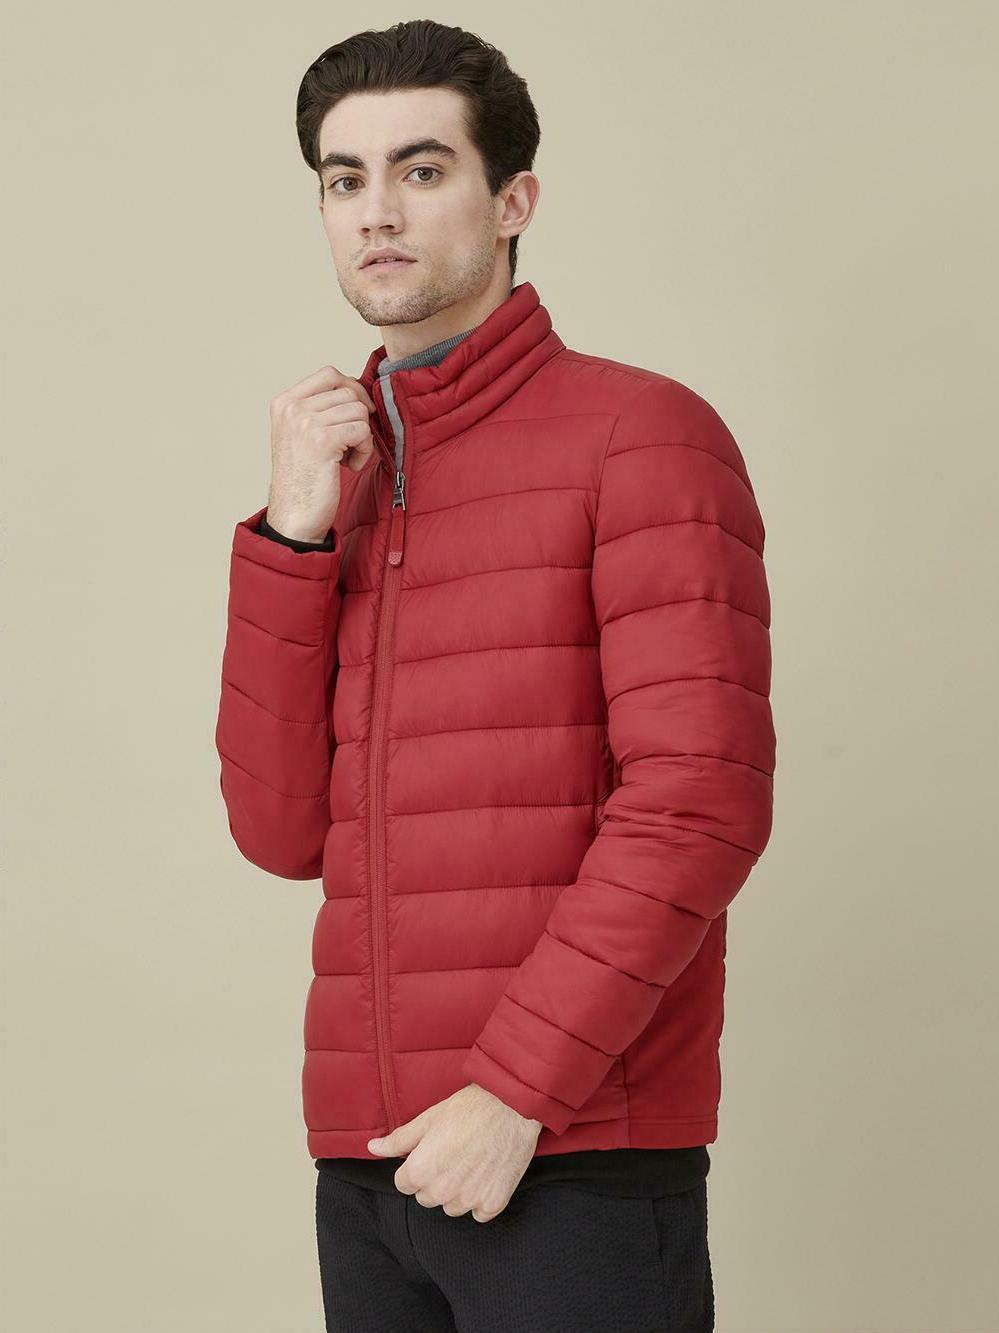 GUESS Men's Stand Nylon Jacket RED - Size NEW